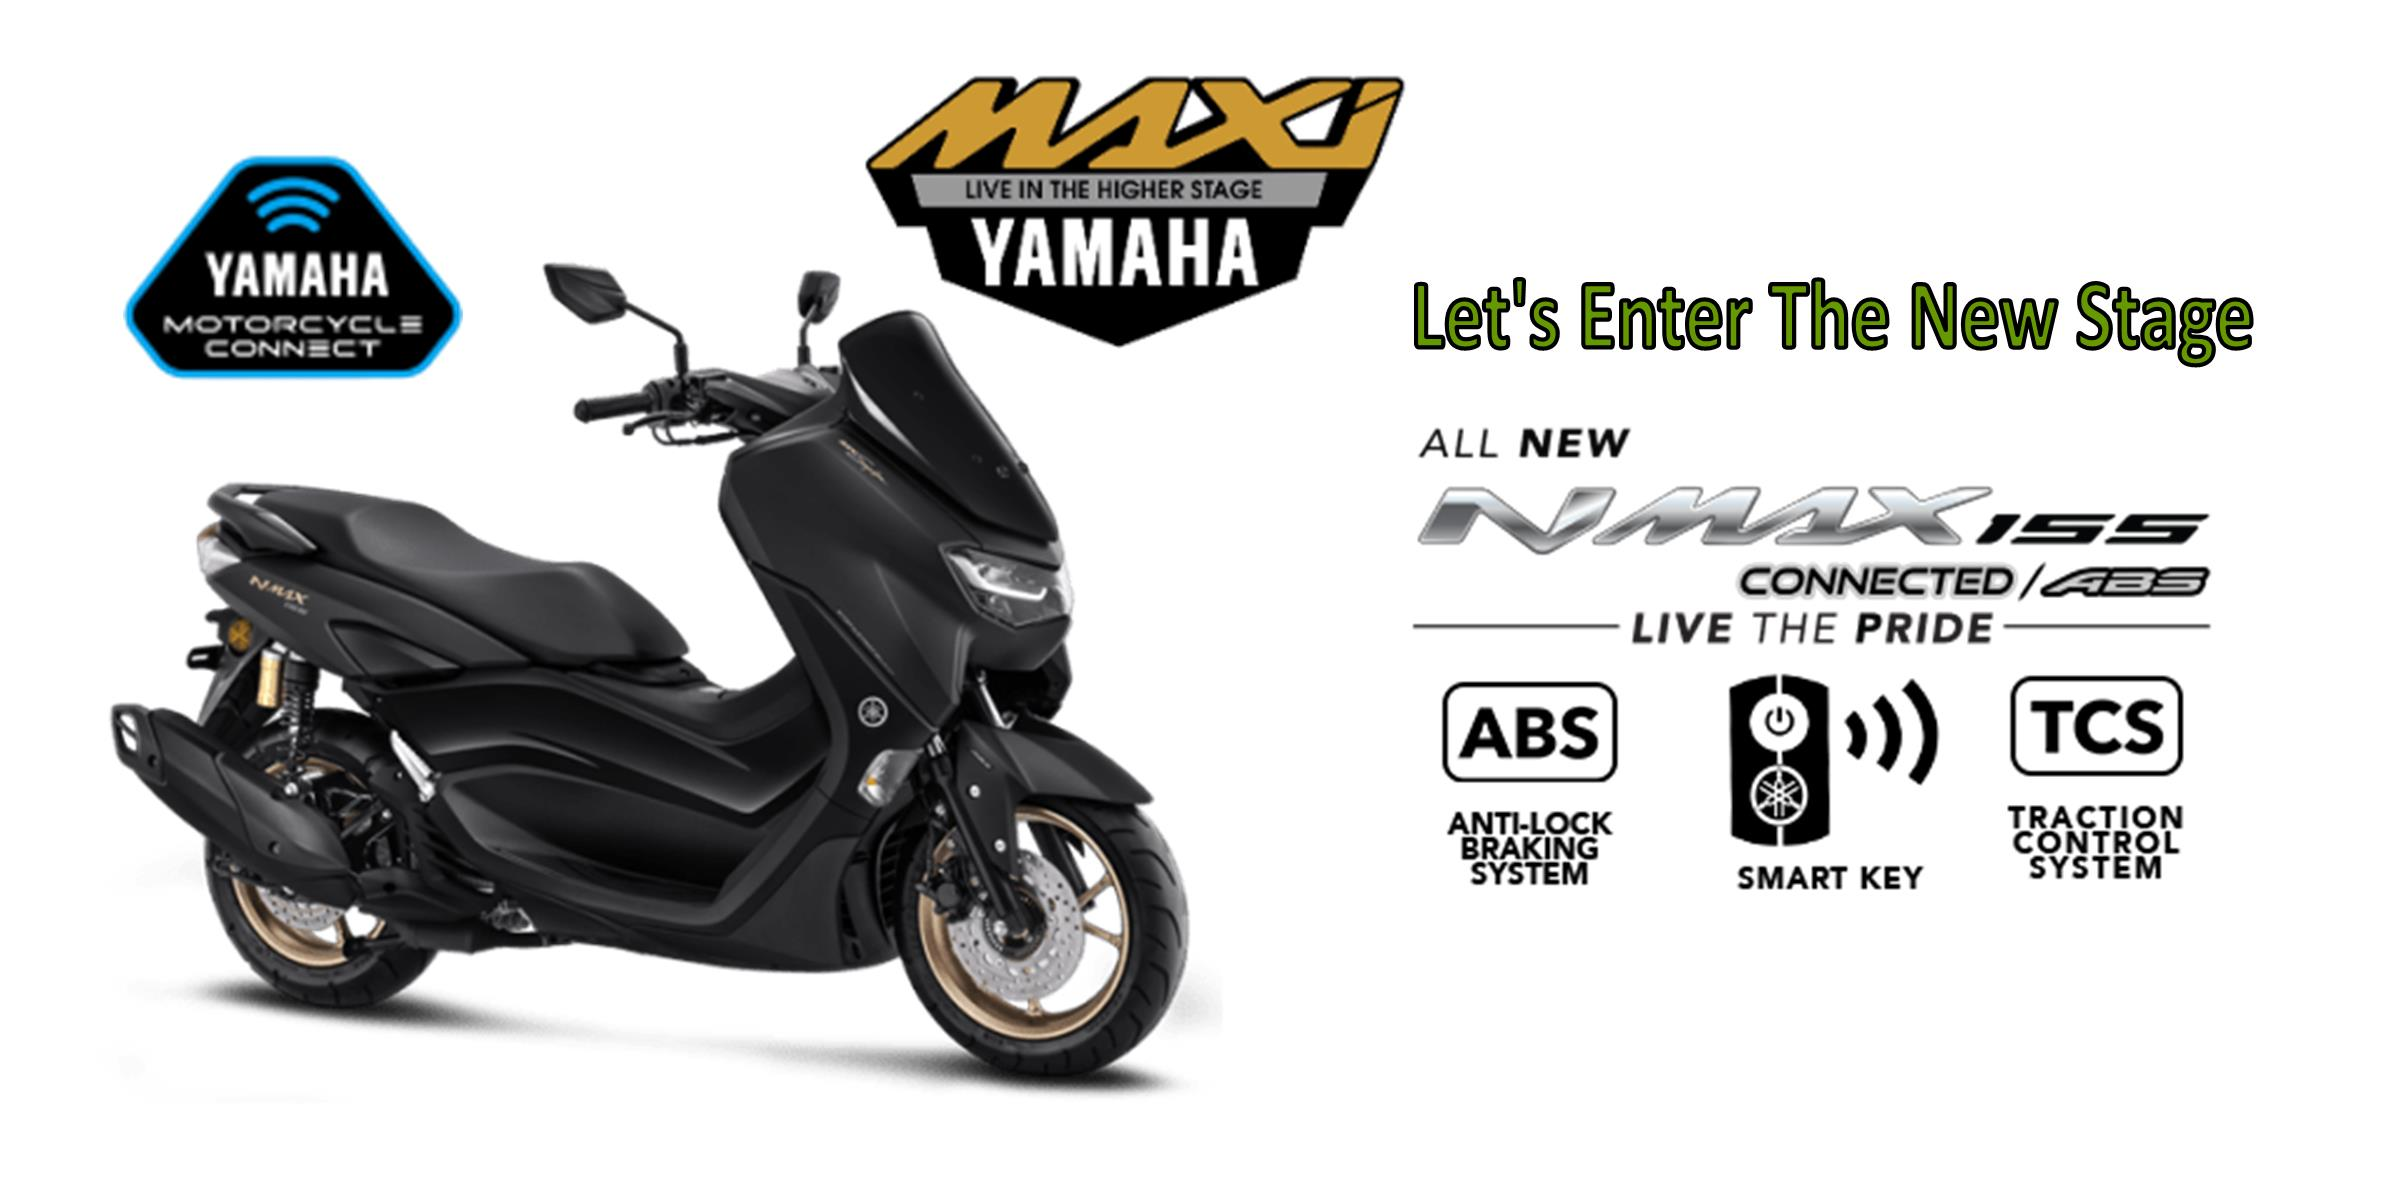 Promo All New Nmax ABS Connected